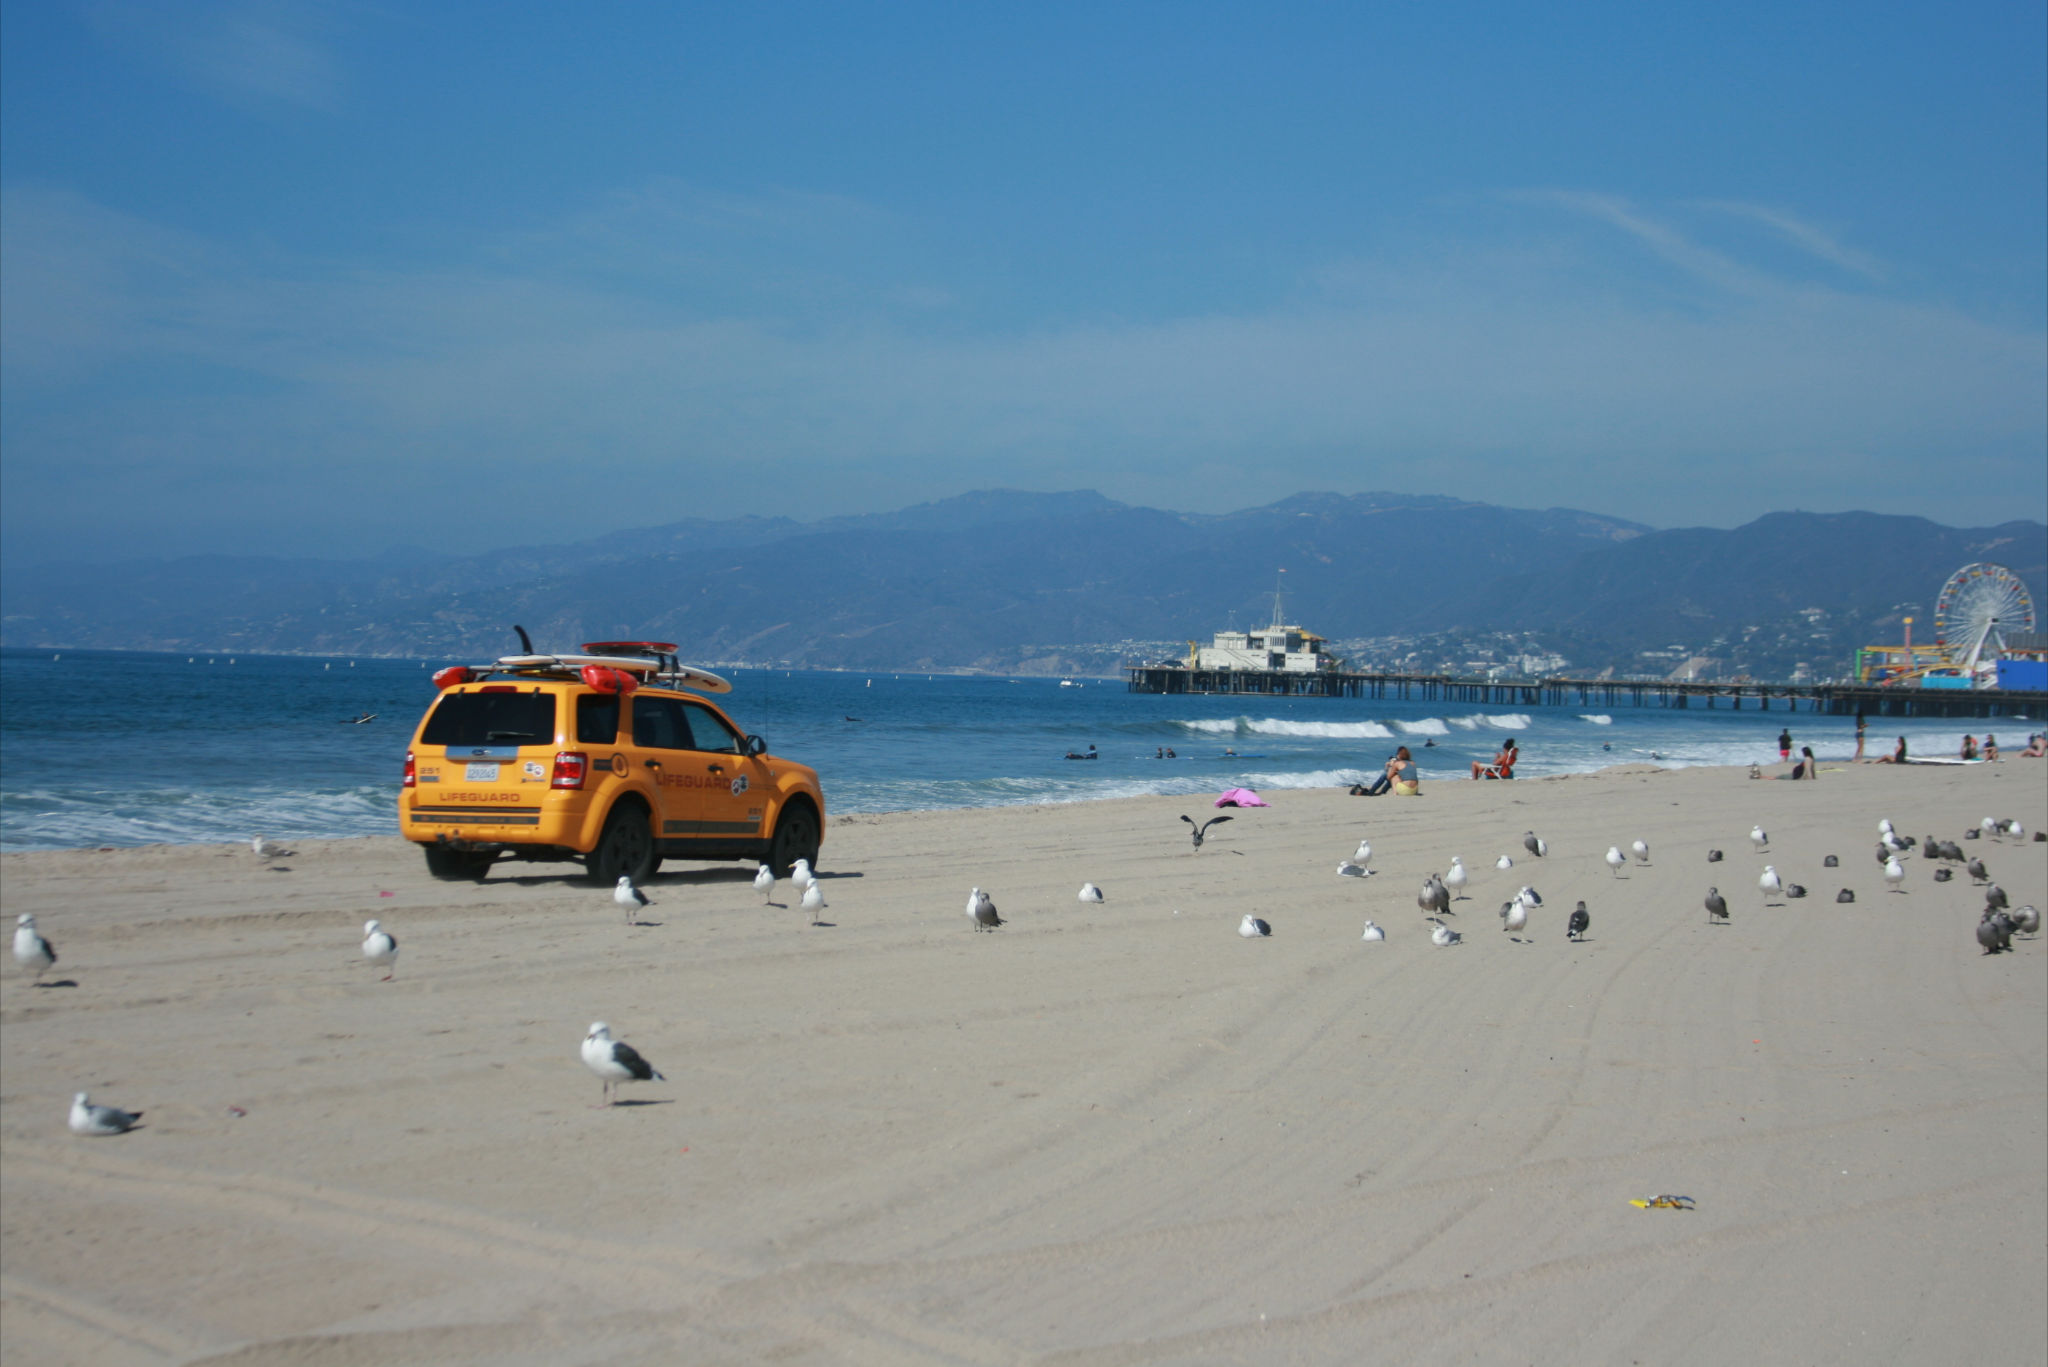 los angeles beach plage